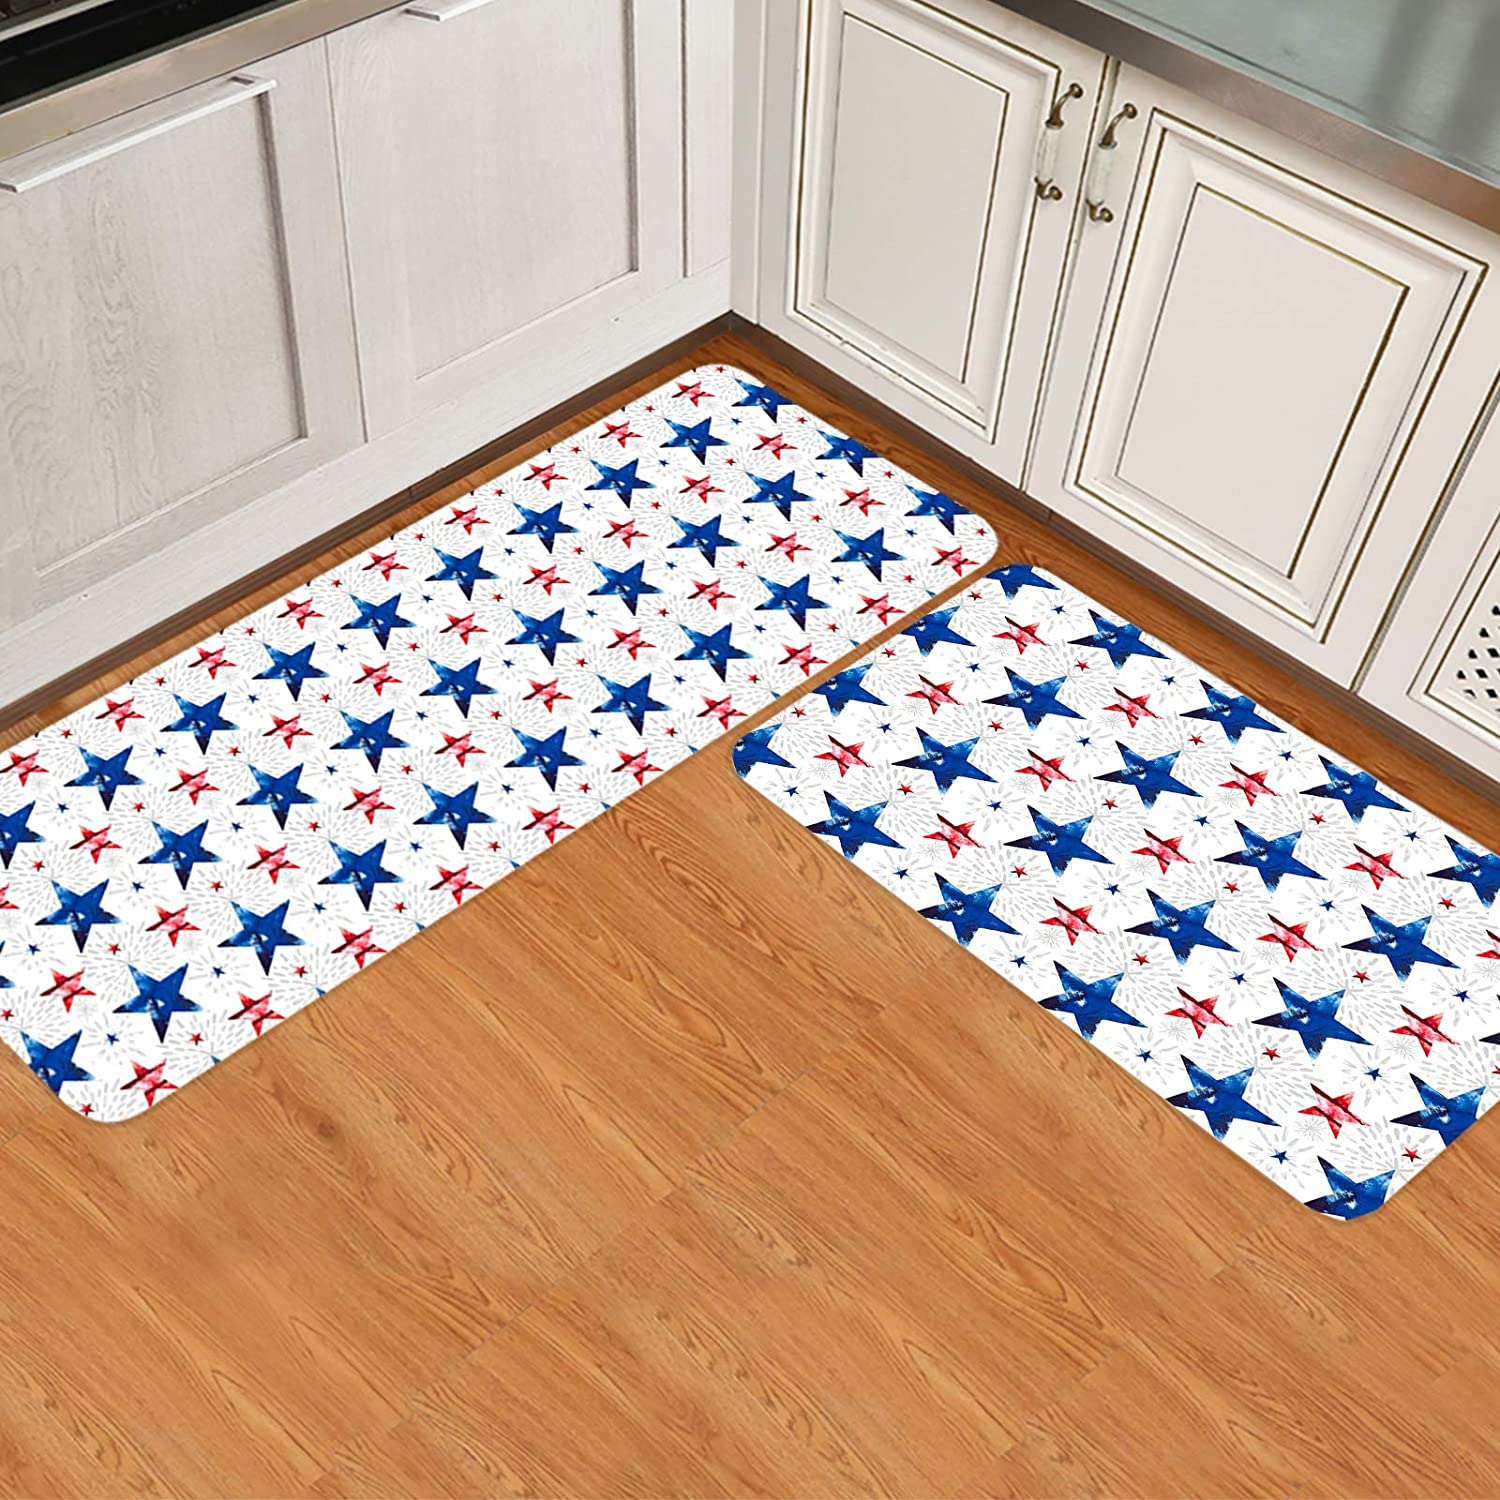 2 Pieces Kitchen Rug Set Non-Slip Doormat Discount mail order OFFicial mail order Rugs Throw Mat Backing